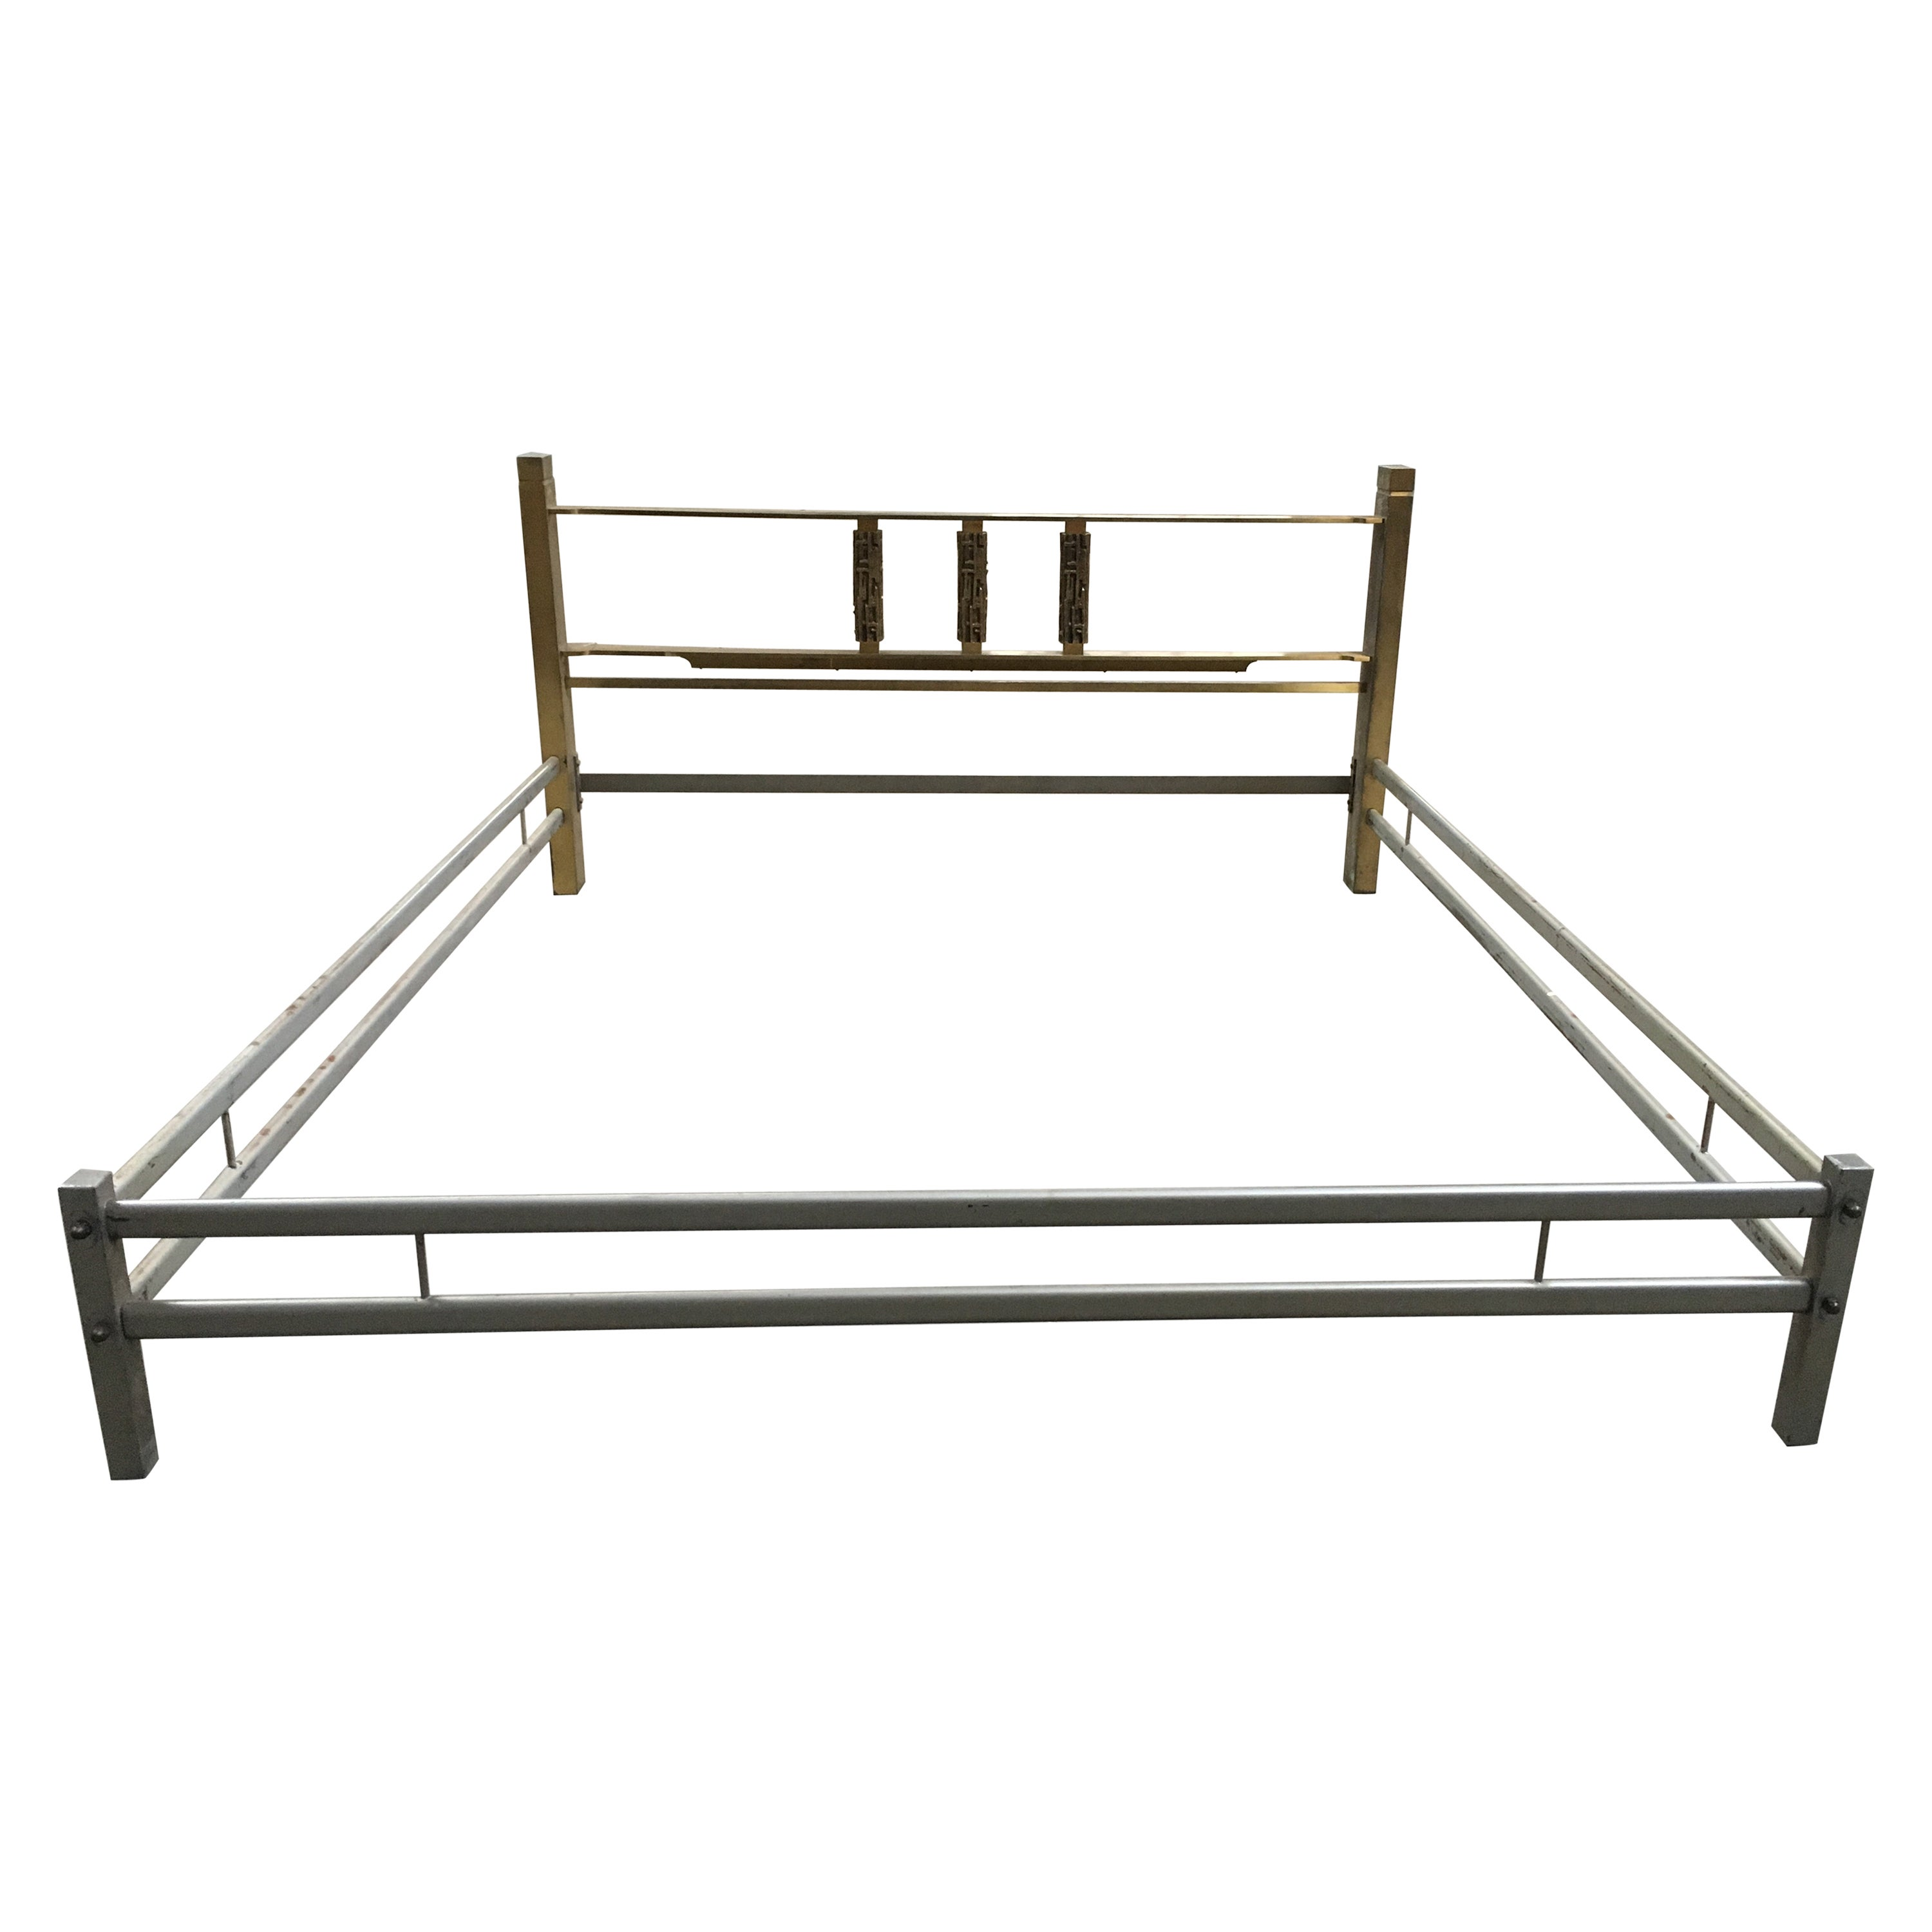 Italian Mid-Century Modern Bronze Queen Size Bed by Luciano Frigerio, 1970s